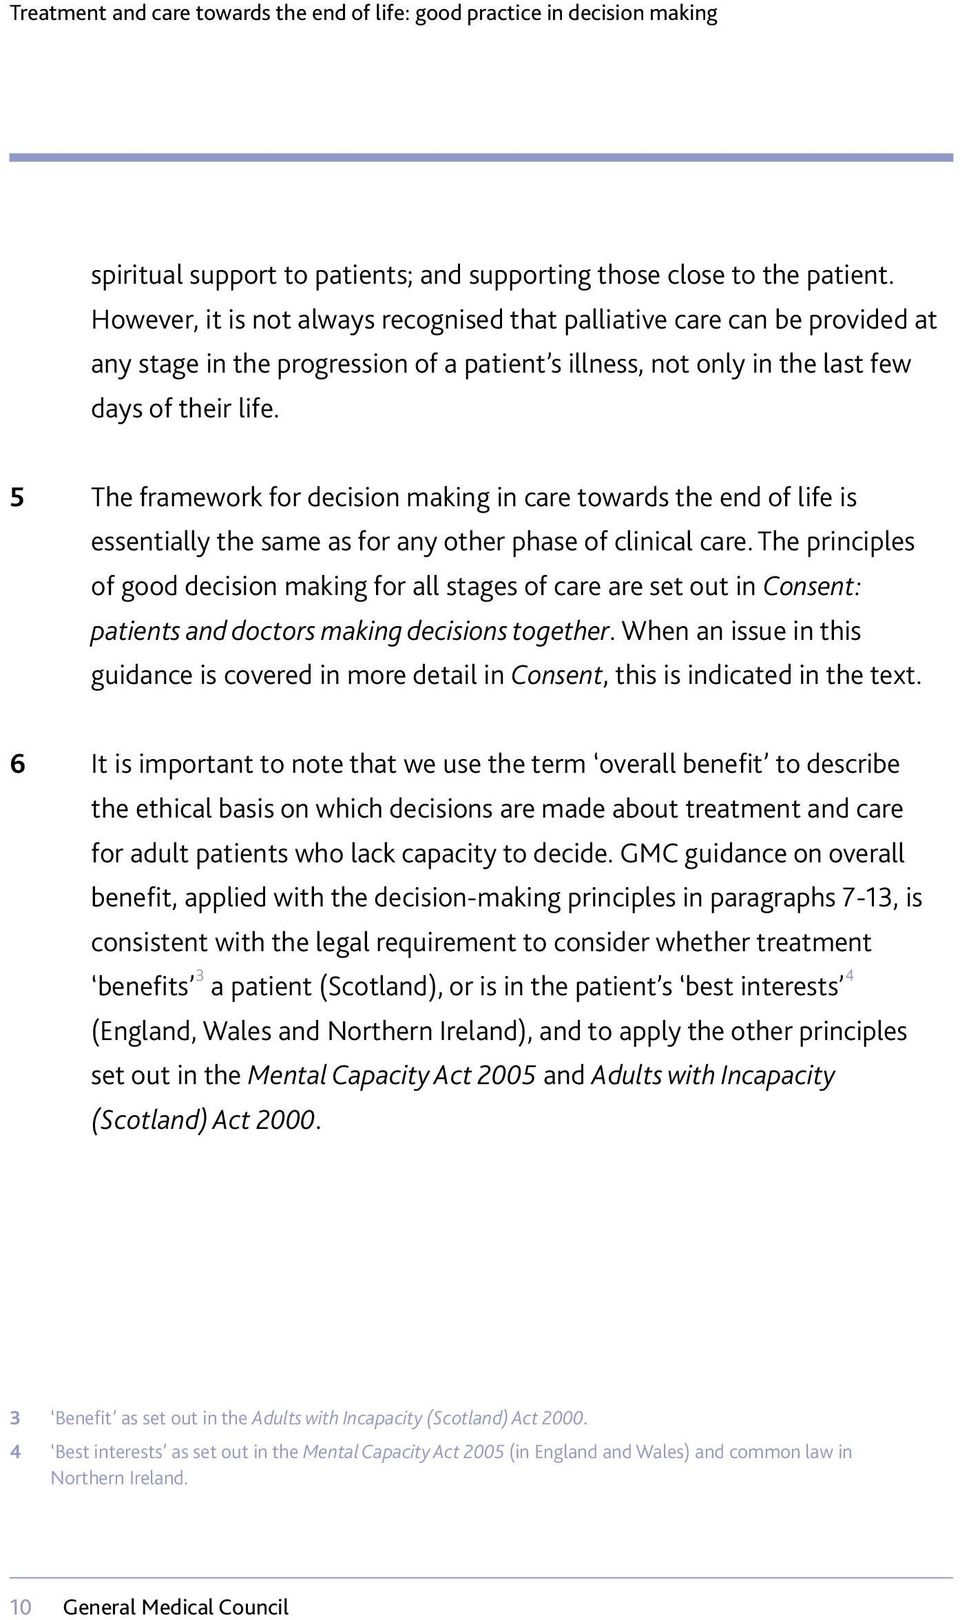 5 The framework for decision making in care towards the end of life is essentially the same as for any other phase of clinical care.